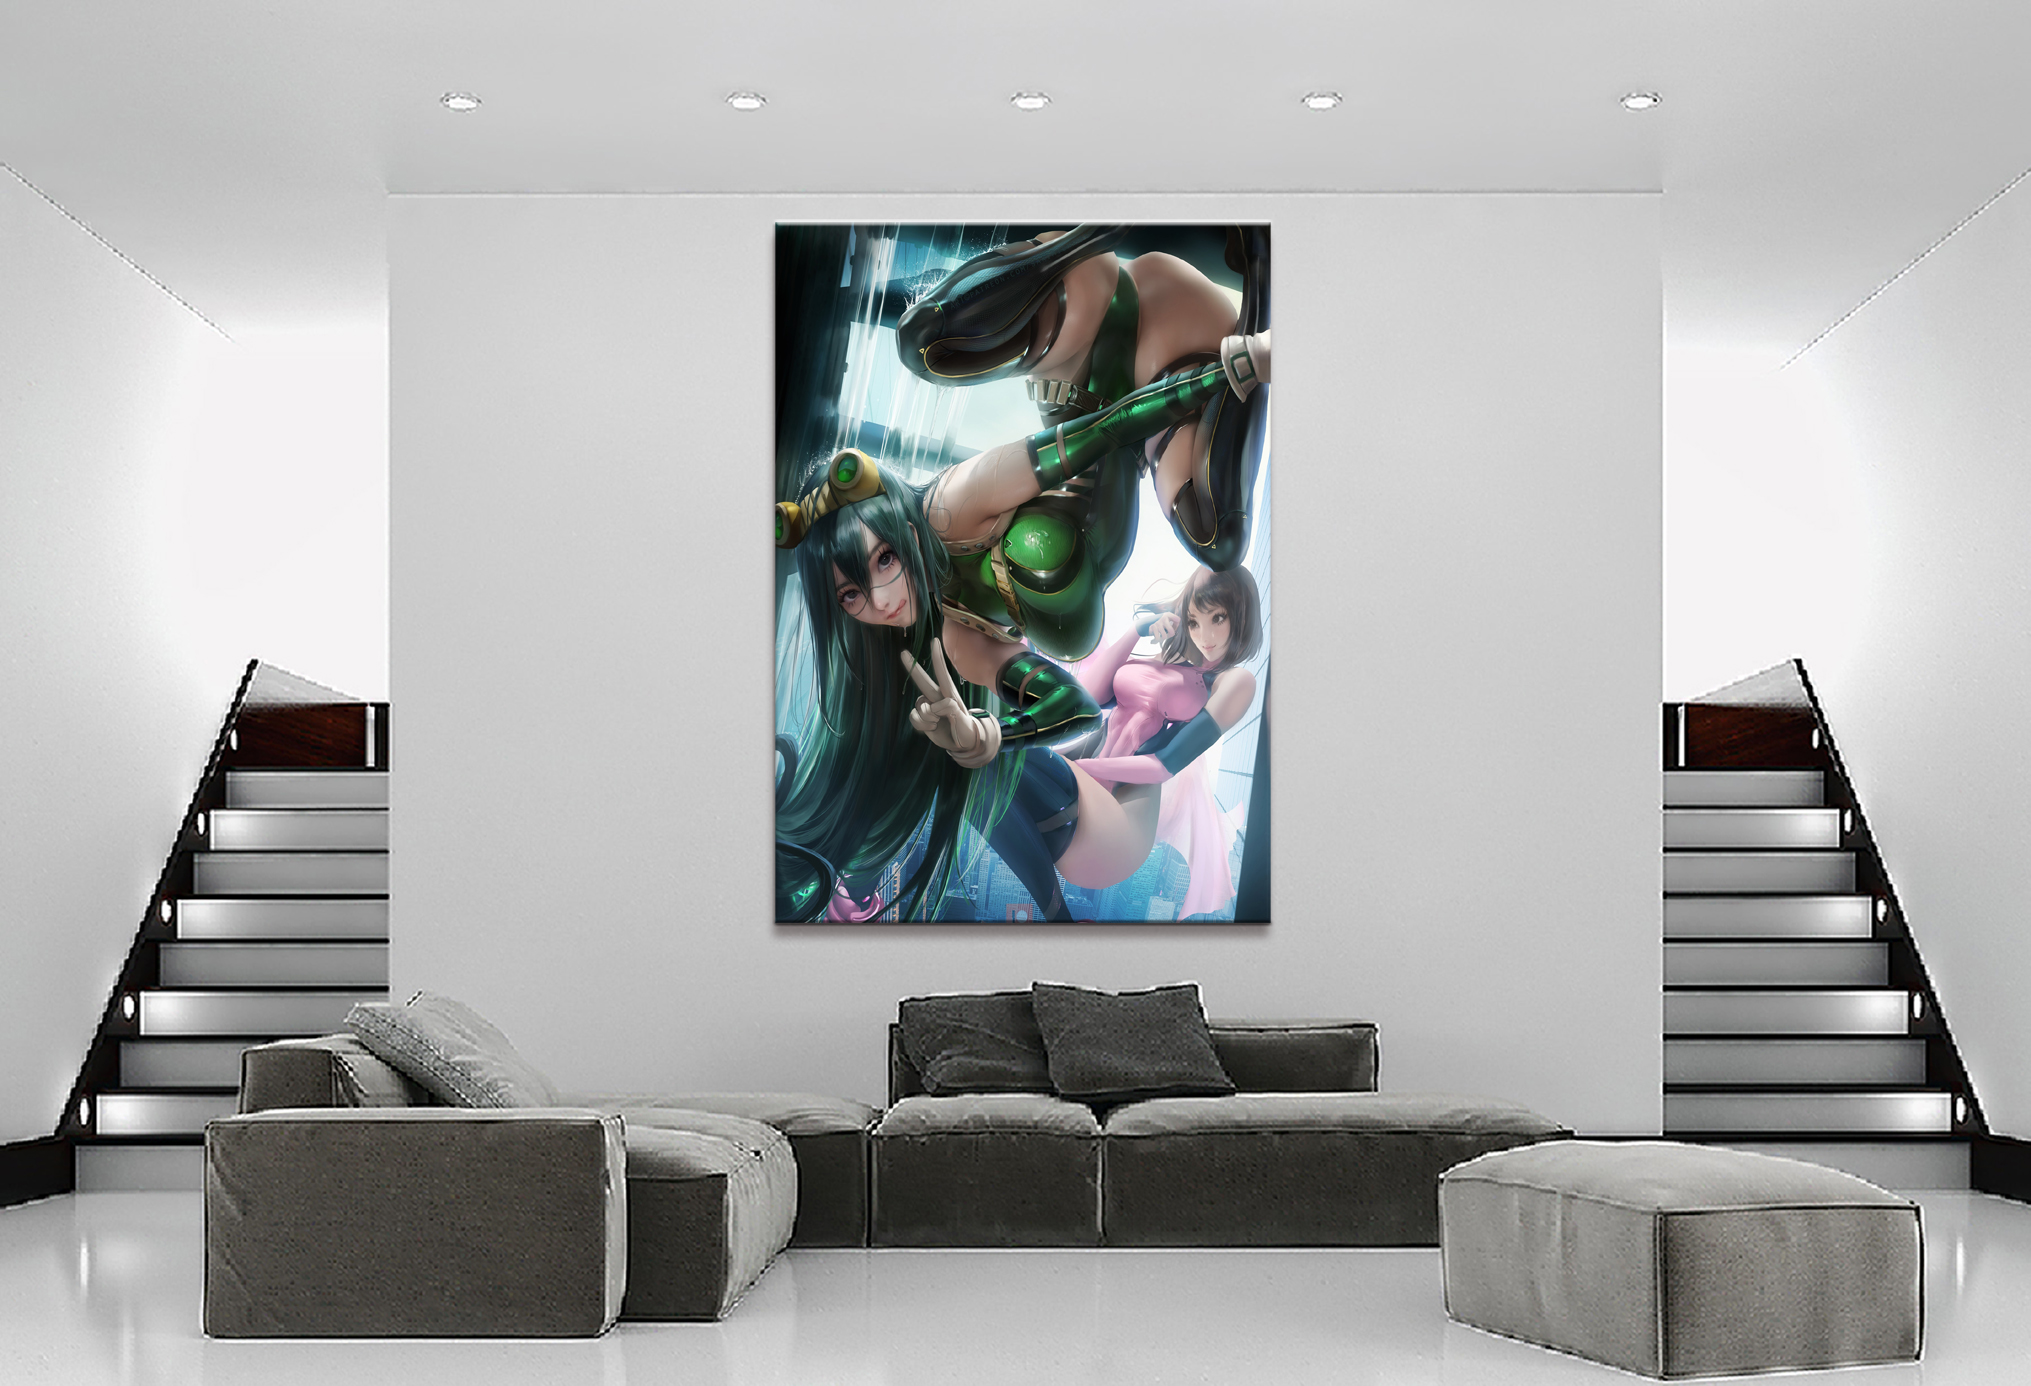 Home Decor Canvas 1 Piece Cute Sexy Anime My Hero Academia Asui Tsuyu Posters and Prints Painting Home Decoration Wall Pictures